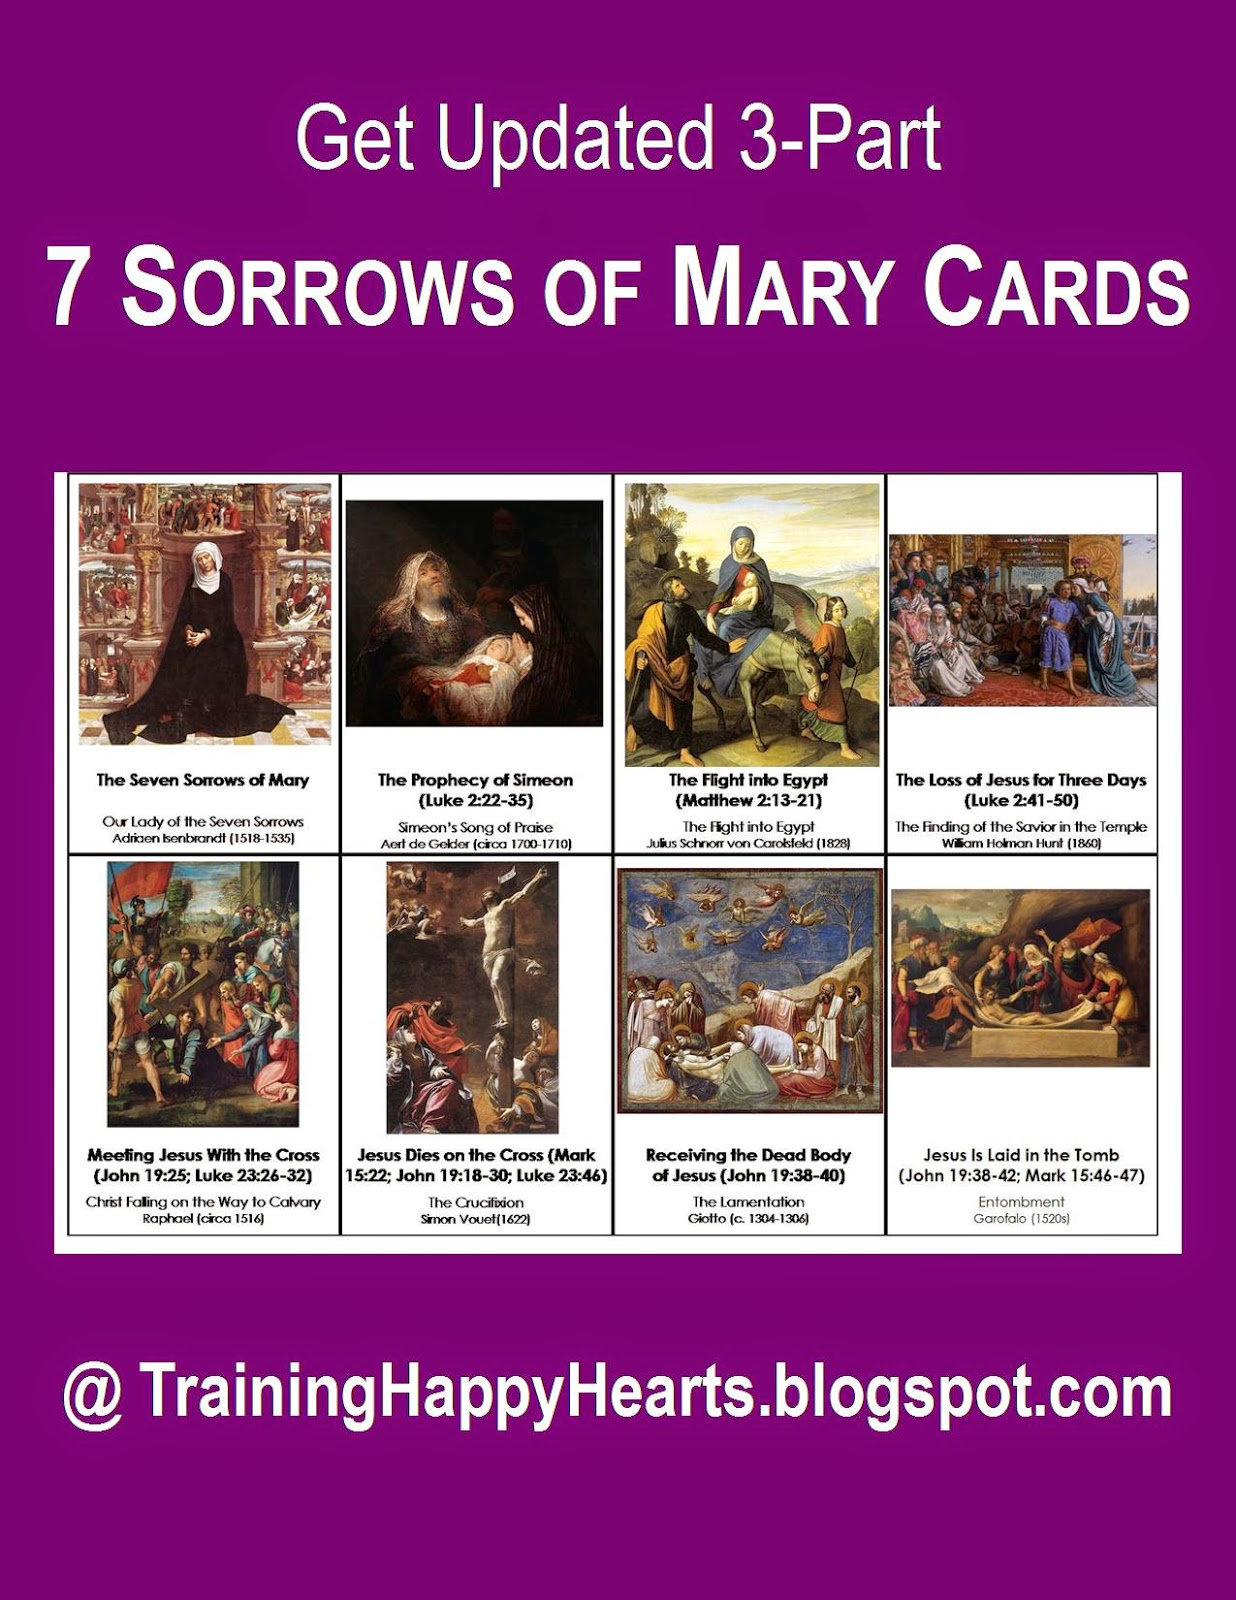 http://traininghappyhearts.blogspot.com/2014/09/free-printable-7-sorrows-of-mary-cards.html